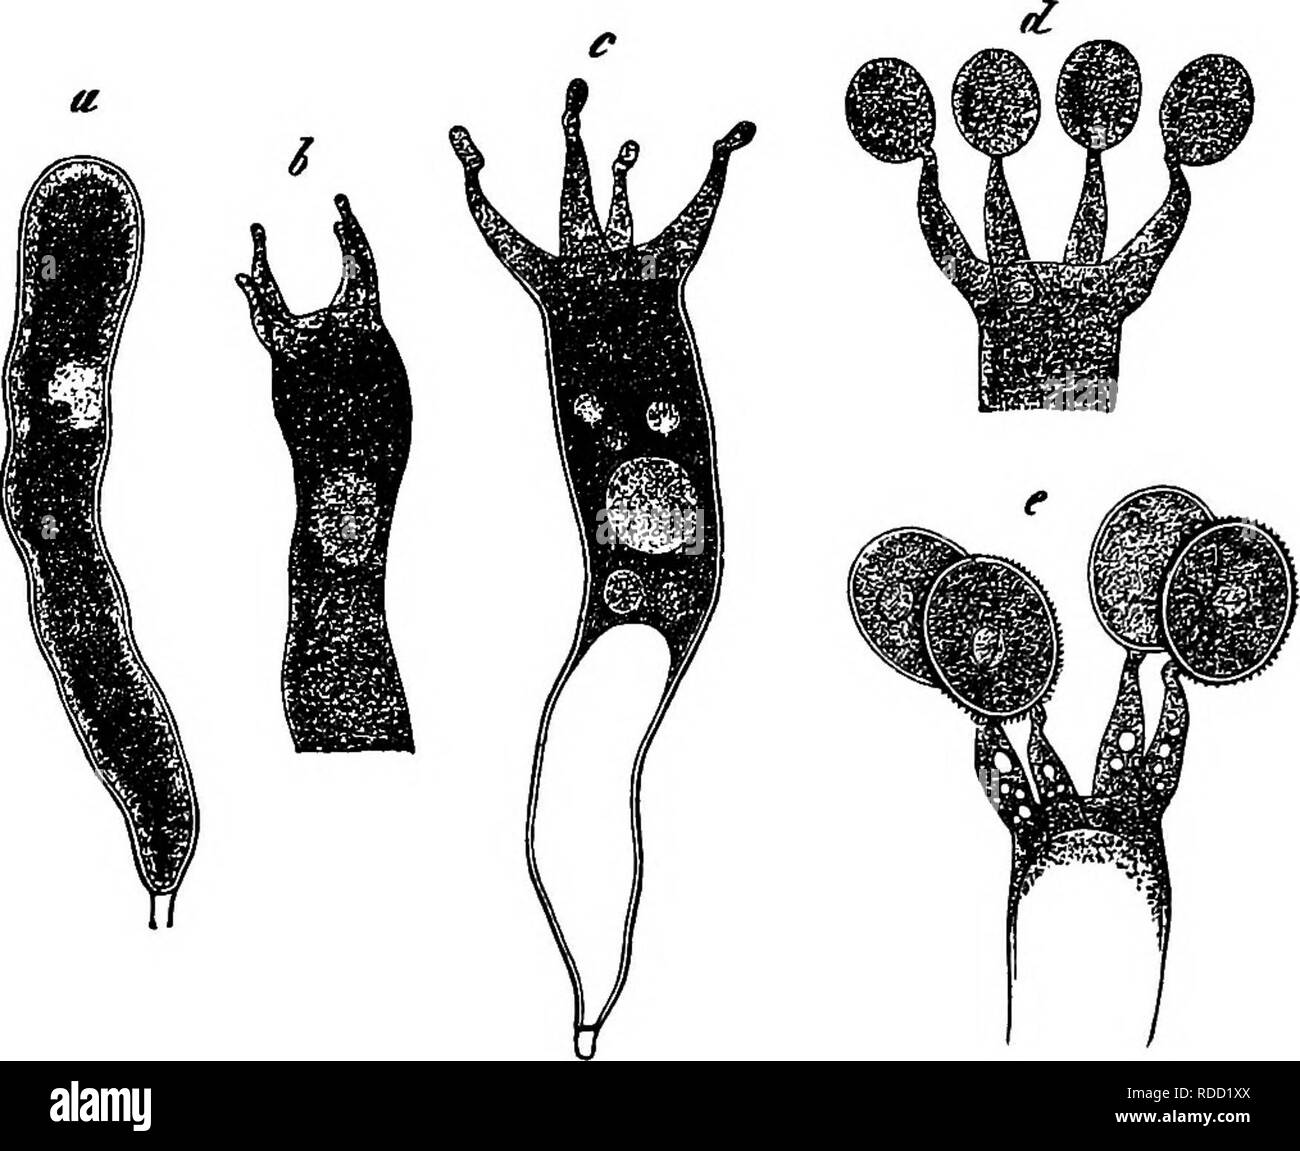 Vacuoles Black and White Stock Photos & Images - Alamy